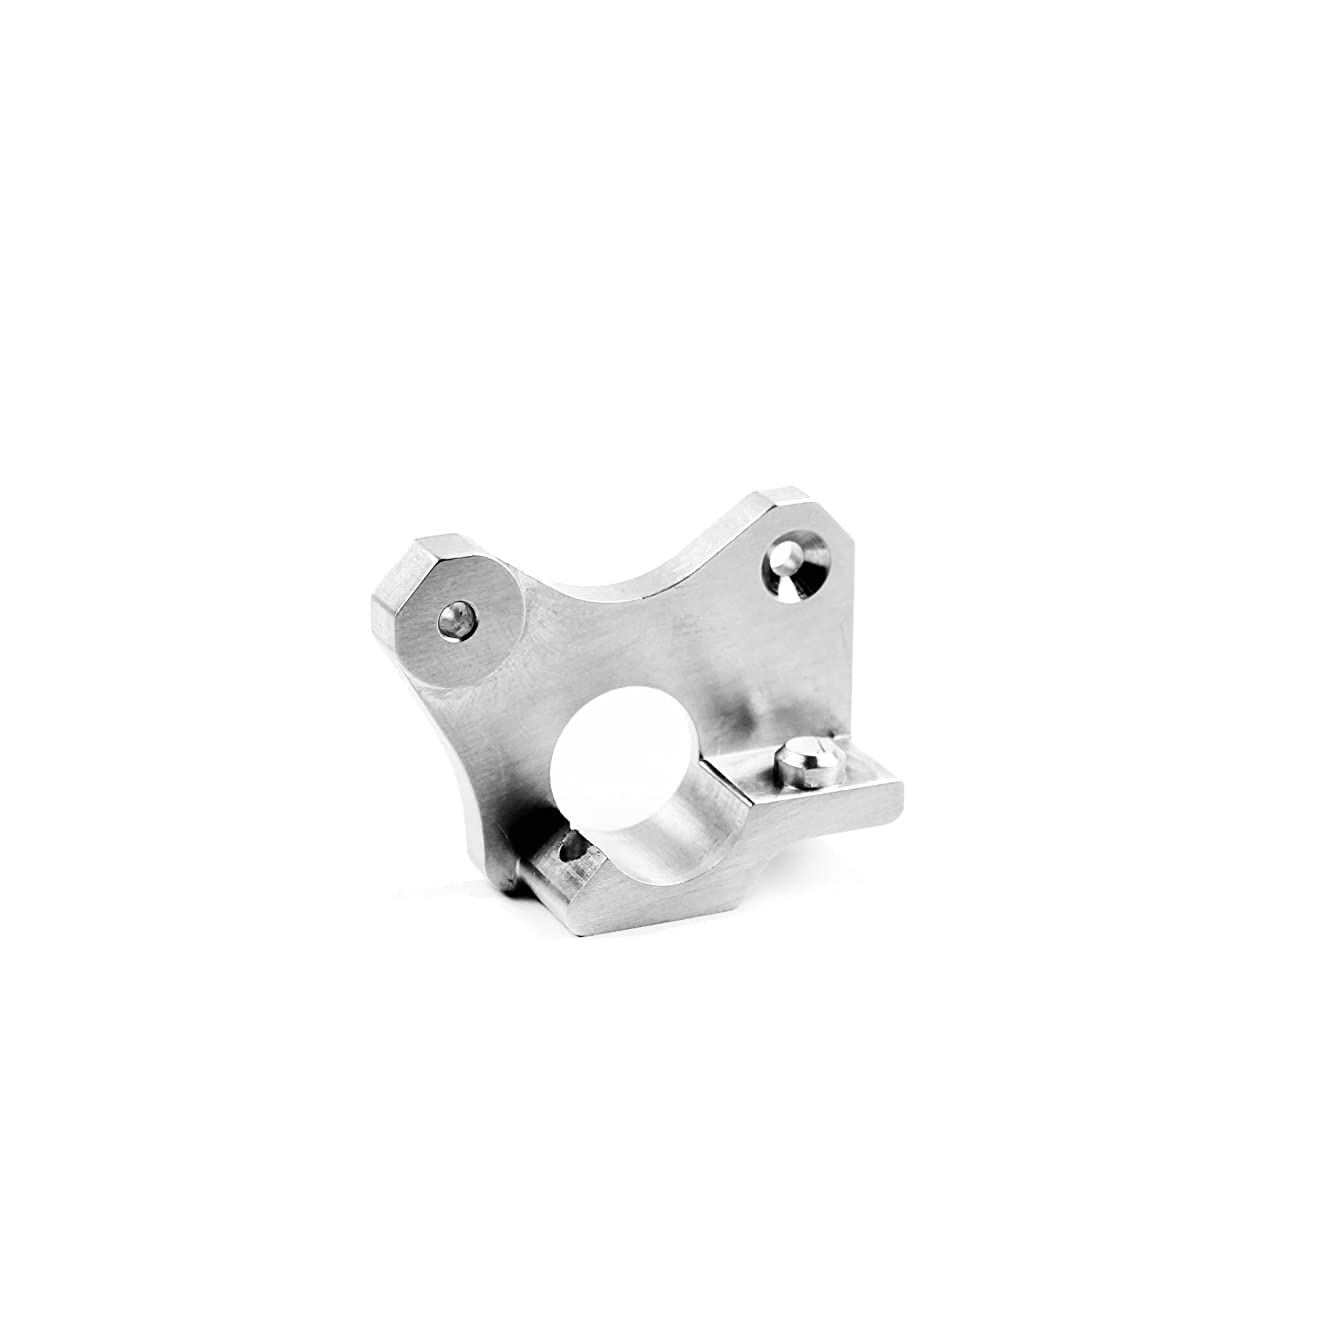 Micro Swiss CNC Machined Aluminum Extruder Plate for Wanhao i3